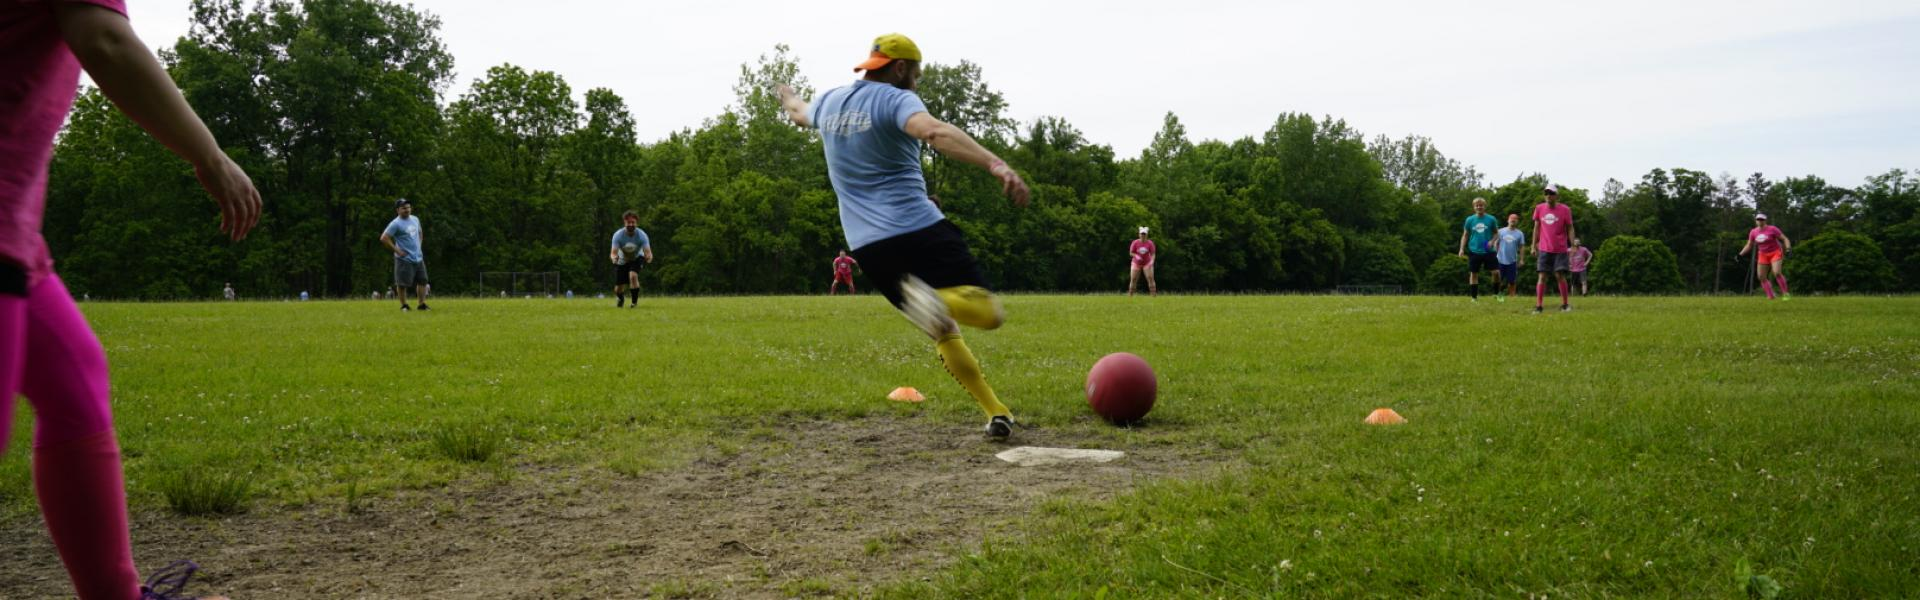 Ithaca Kickball in Action